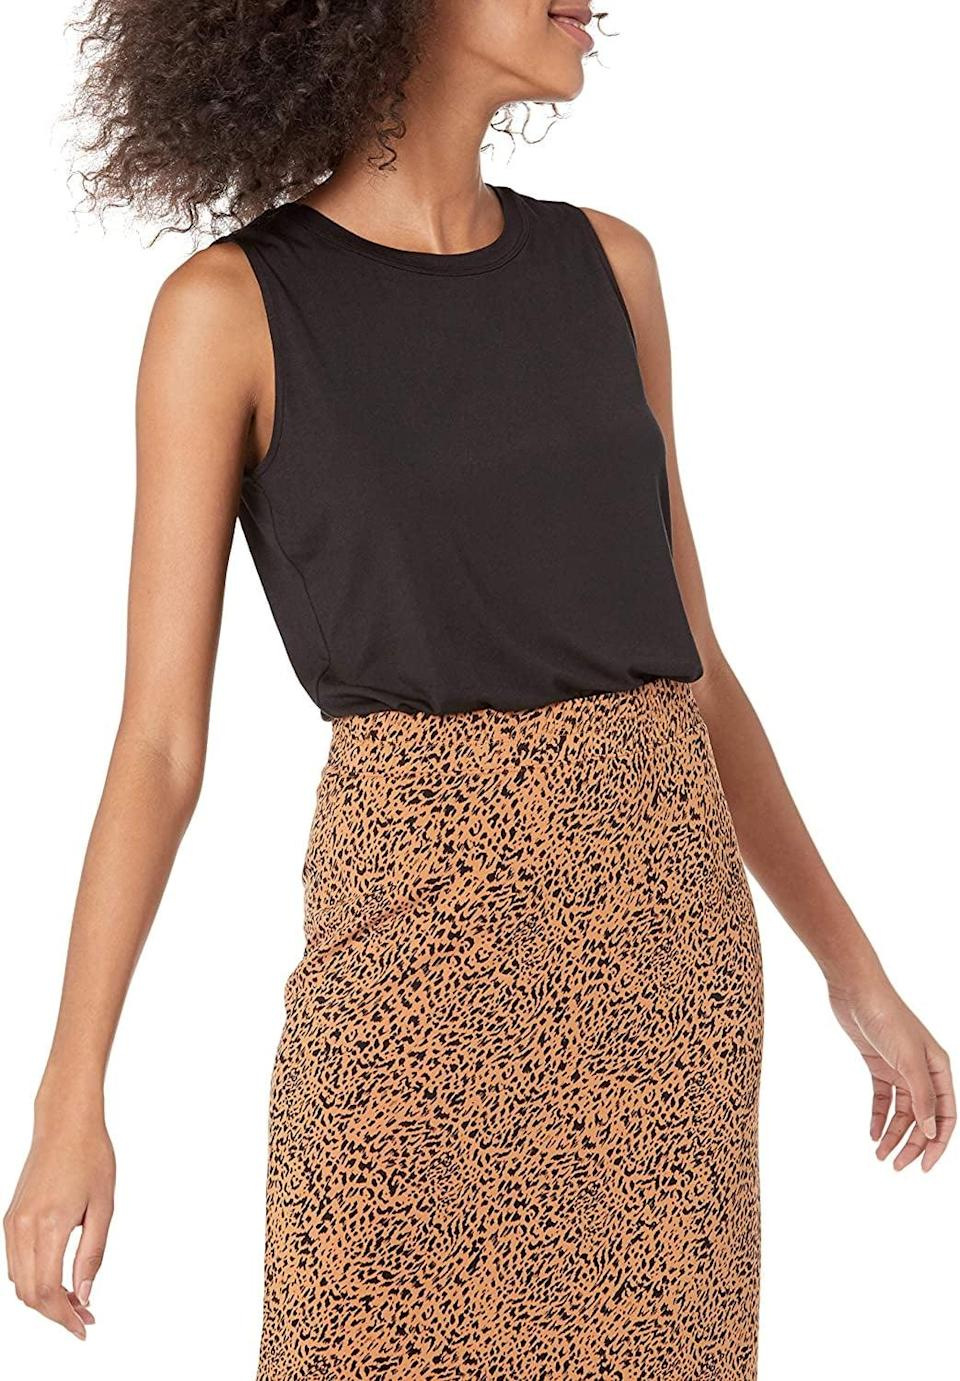 <p>On days when getting dressed isn't a priority, this <span>Amazon Essentials Sleeveless Tank</span> ($17, originally $18) will keep you comfortable and put-together. Style it with a leopard midi skirt or black denim jeans, and you'll be ready to step out in no time.</p>